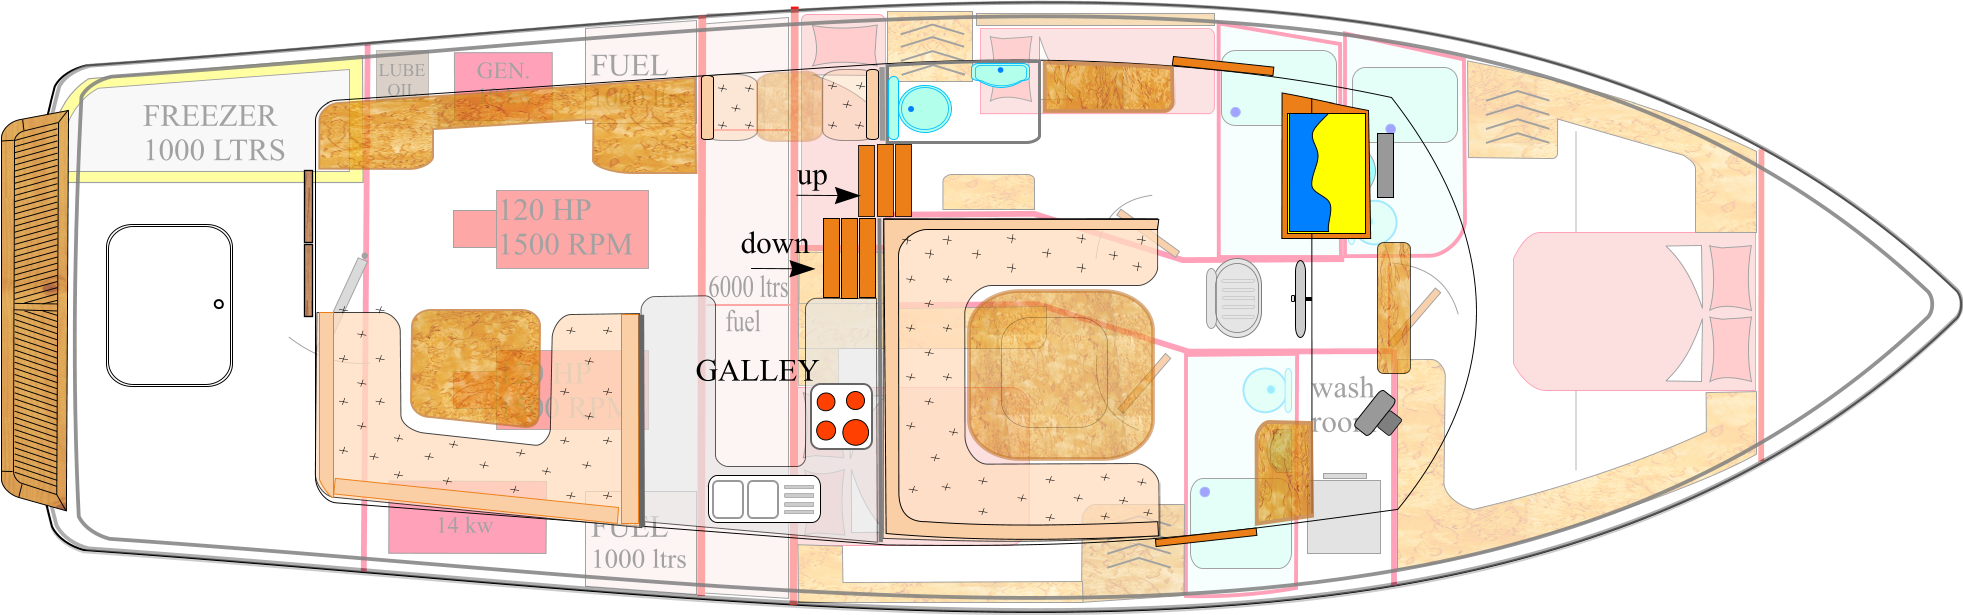 Upper deck layout 1